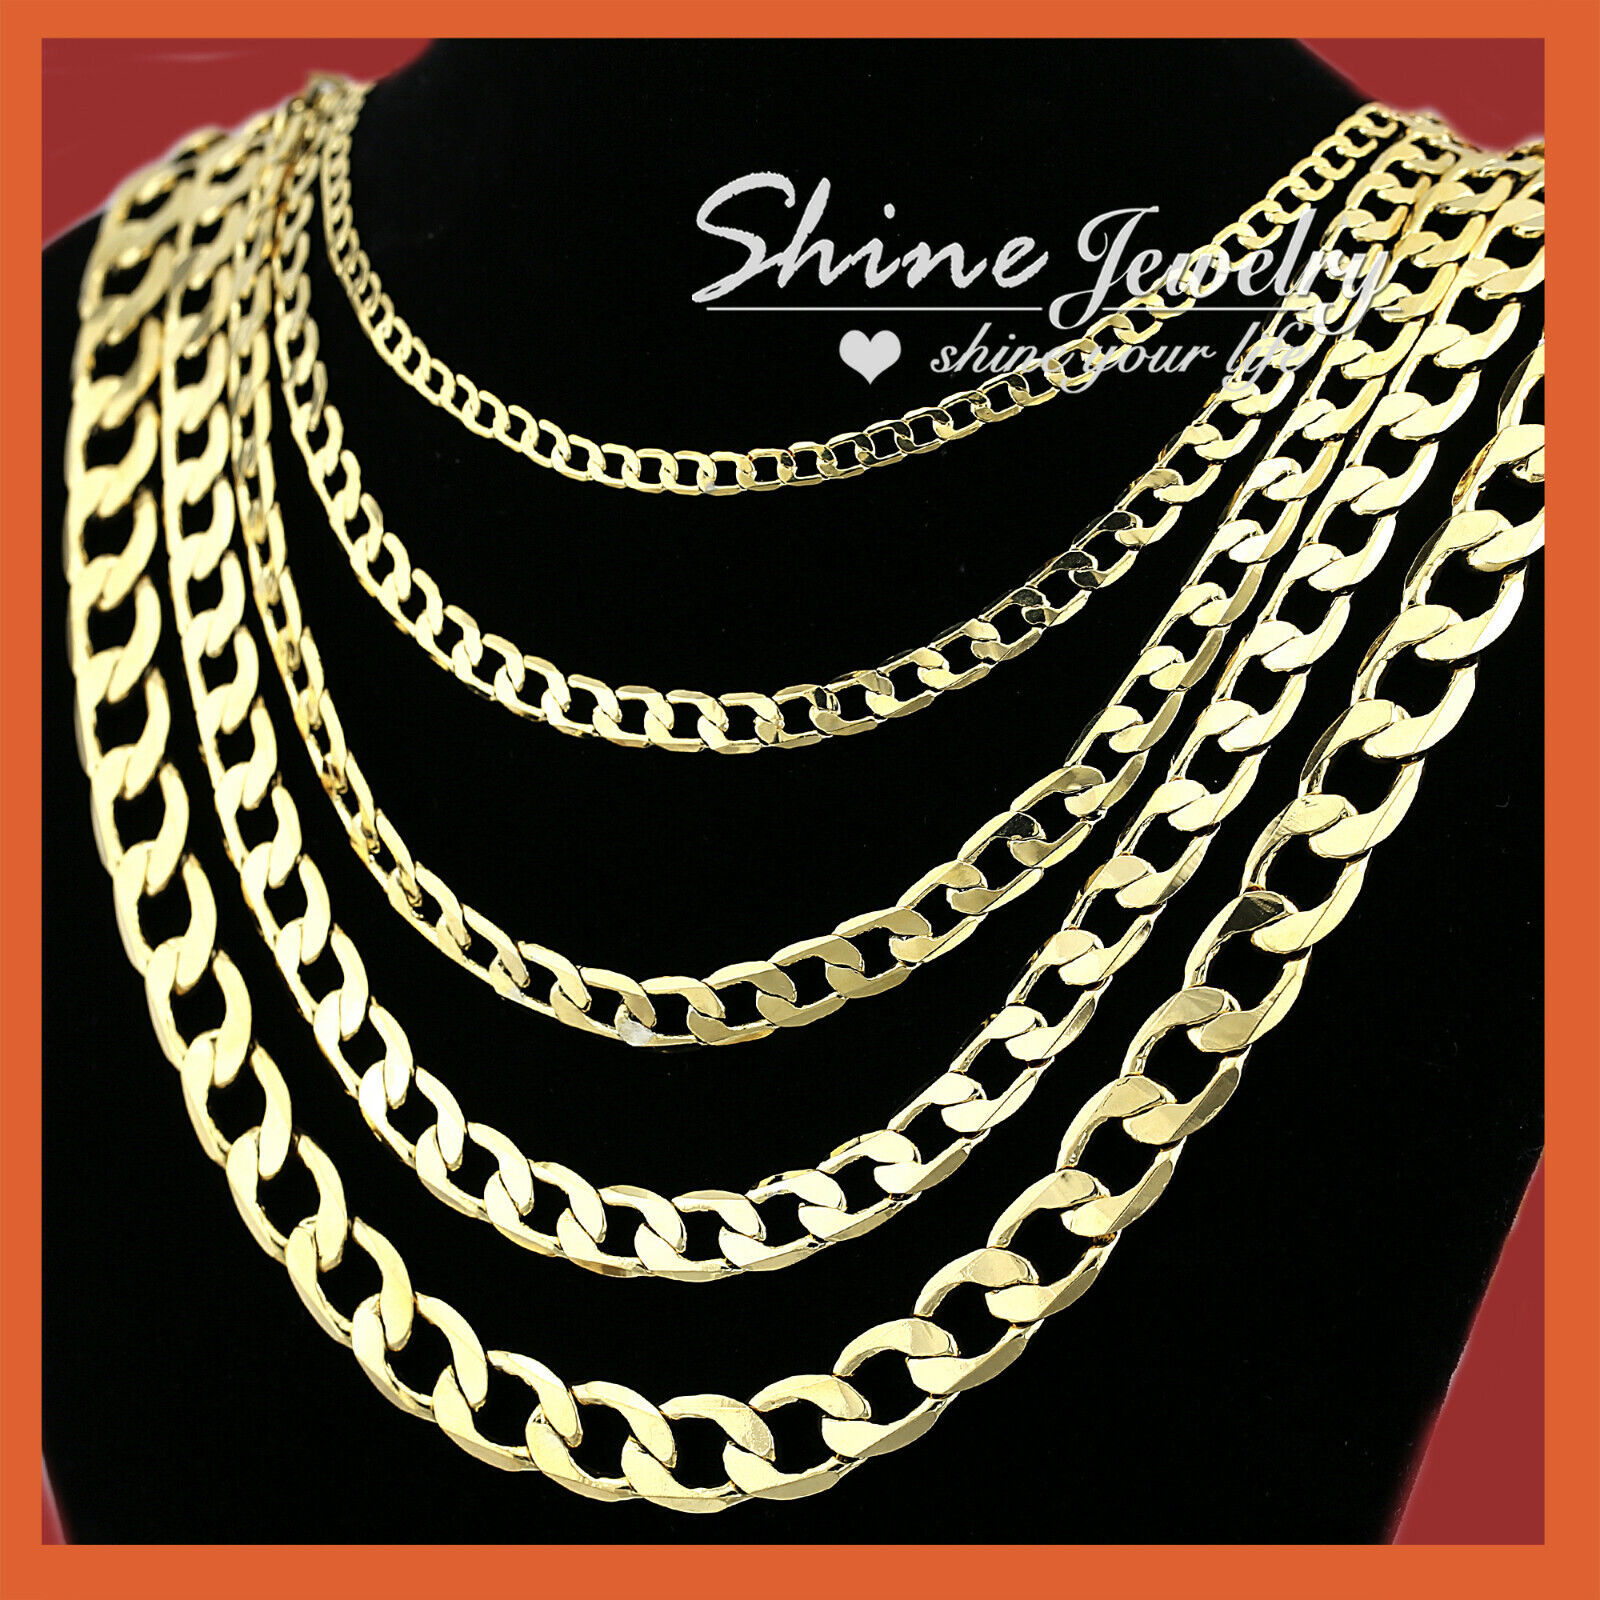 Jewellery - 18K YELLOW GOLD GF FLAT RING CURB CHAIN WOMEN MEN SOLID CHARM 16-30INCH NECKLACE